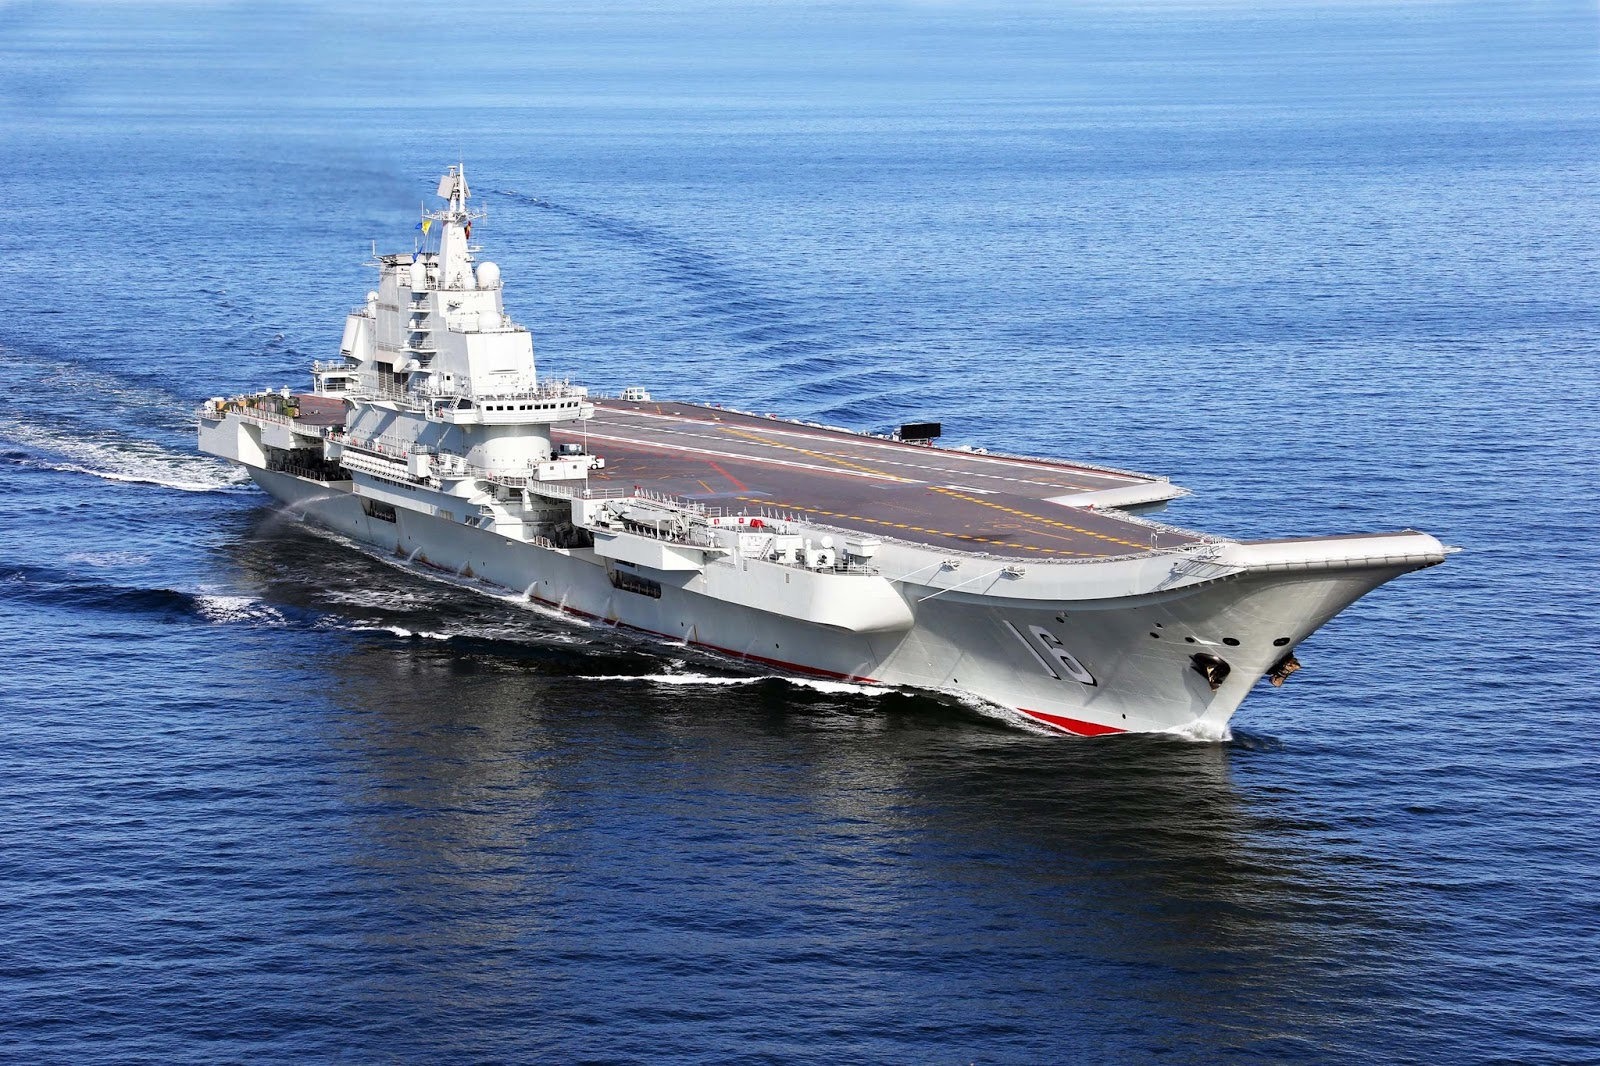 http://2.bp.blogspot.com/-hsSPXMq8lnU/UiwJkovicKI/AAAAAAAAdhM/jWfo5CUoXSs/s1600/j-15+flying+sharke+fighterChina++Aircraft+Carrier+Liaoning+CV16+j-15+16+17+22+21+31+z8+9+10+11+12+13fighter+jet+aewc+PLA+NAVY+PLAAF+PLANAF+LANDING+TAKEOFF+(1).jpg